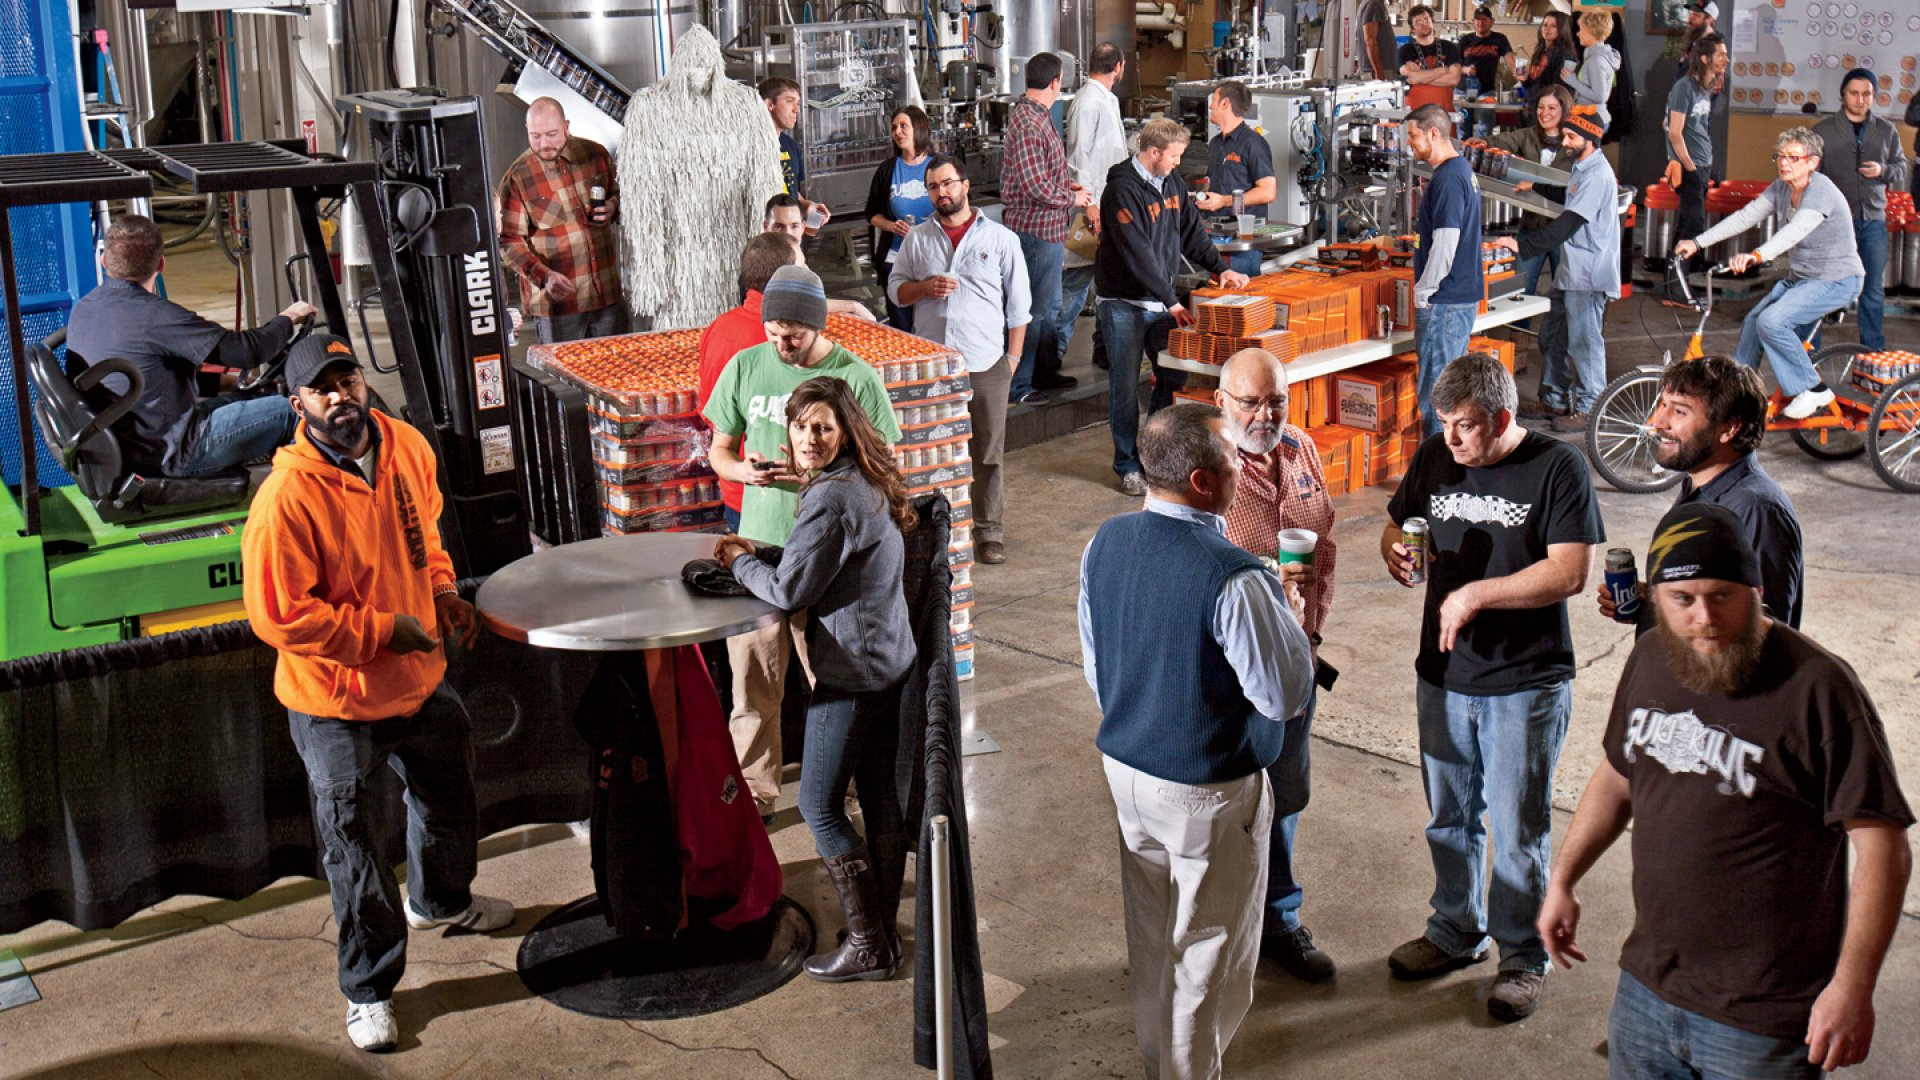 <b>WOULD YOU LIKE TO OPEN A TAB</b> With 85 full- and part-time employees, and no health insurance policy, Sun King Brewing in Indianapolis could face a penalty of $60,000 when  new health care regulations take effect in January 2014.